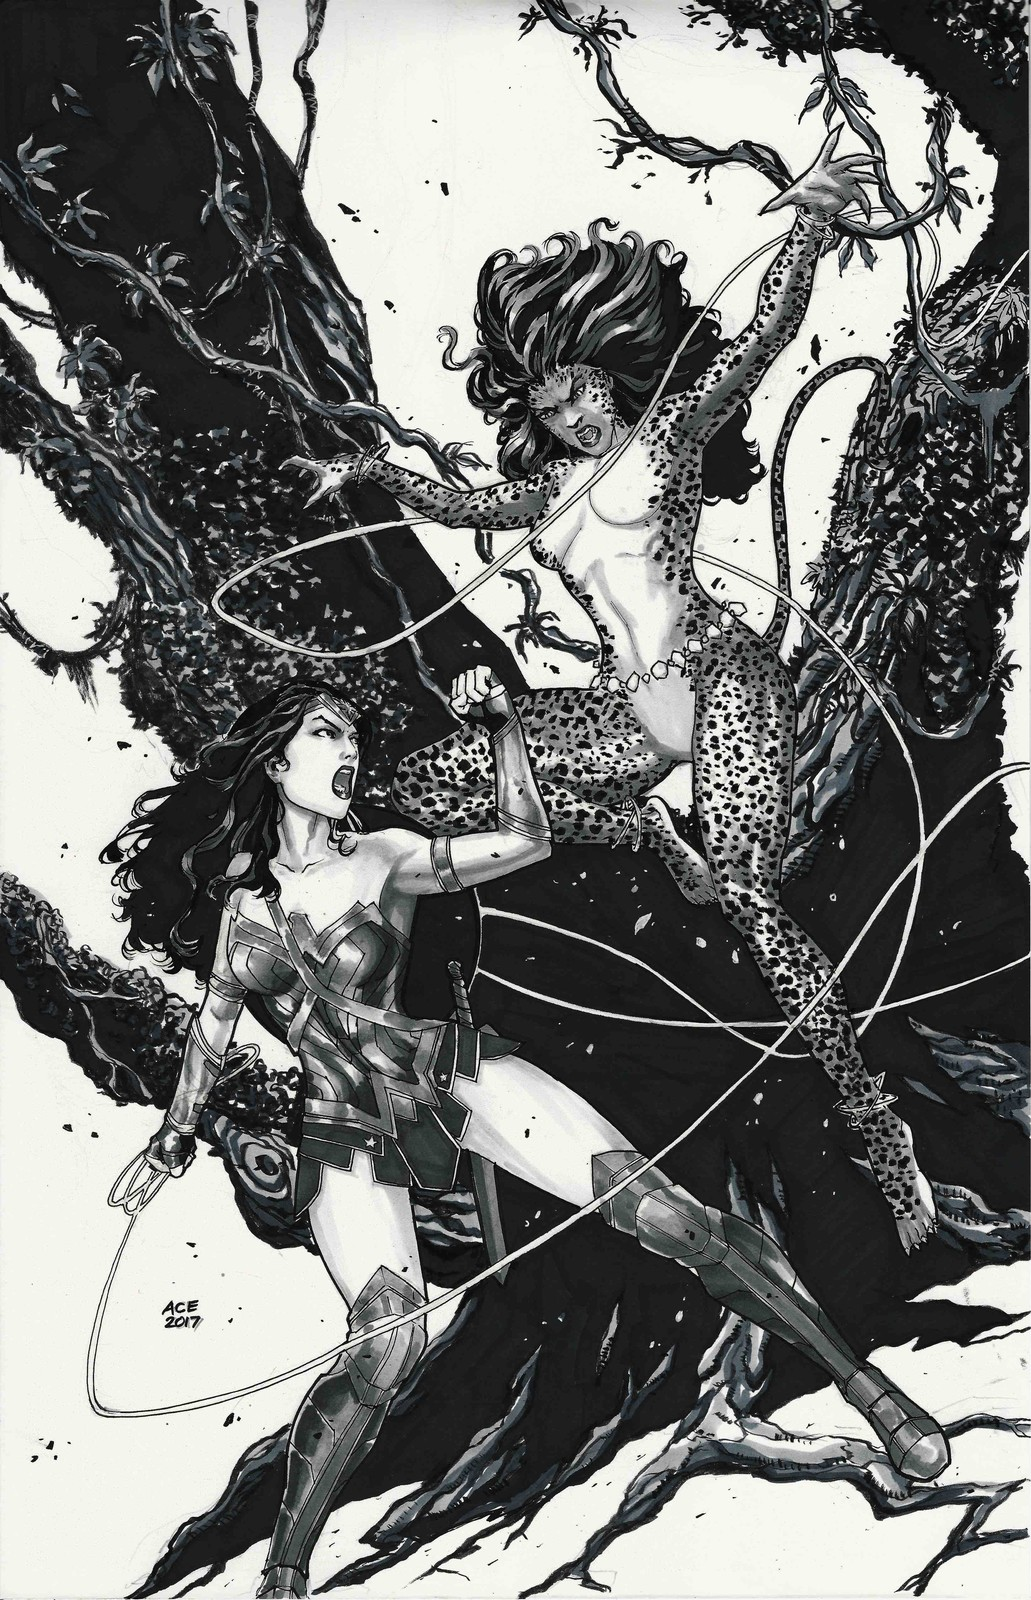 Wonder Woman vs Cheetah commission for SDCC 2017